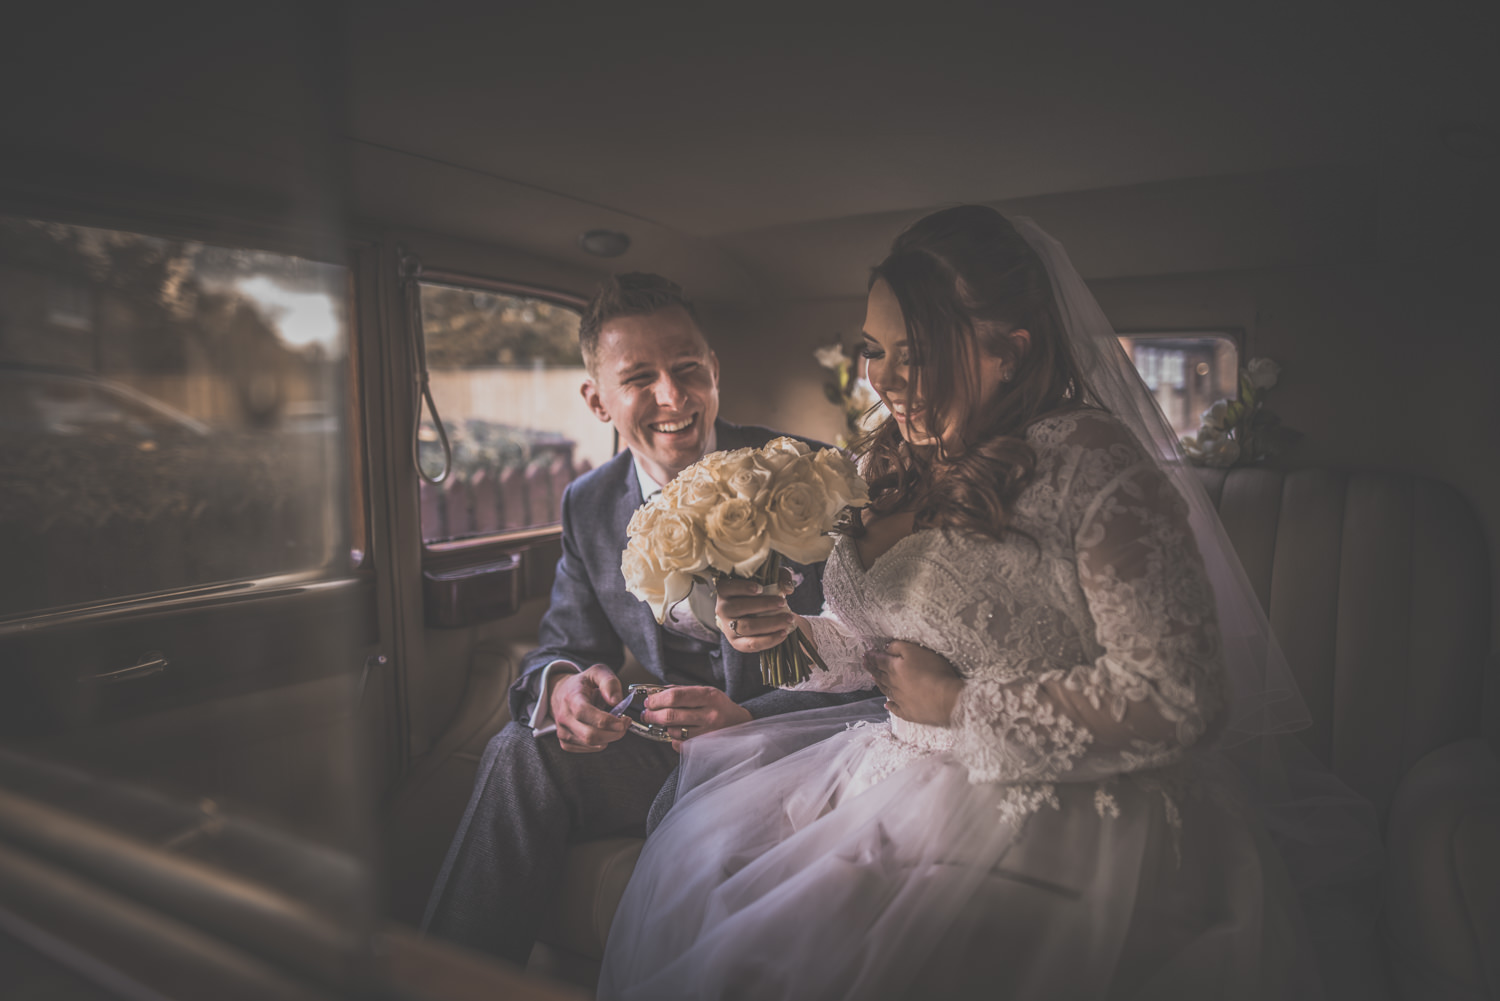 Artistic Wedding Photography in Hampshire and London